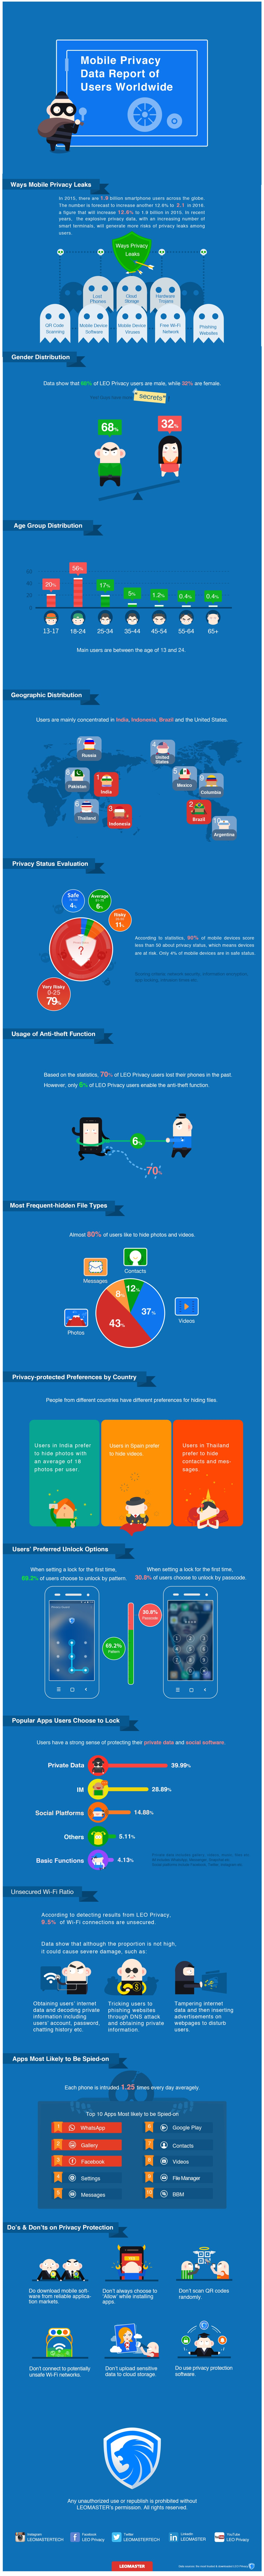 Mobile Privacy Data Report of WorldWide Users